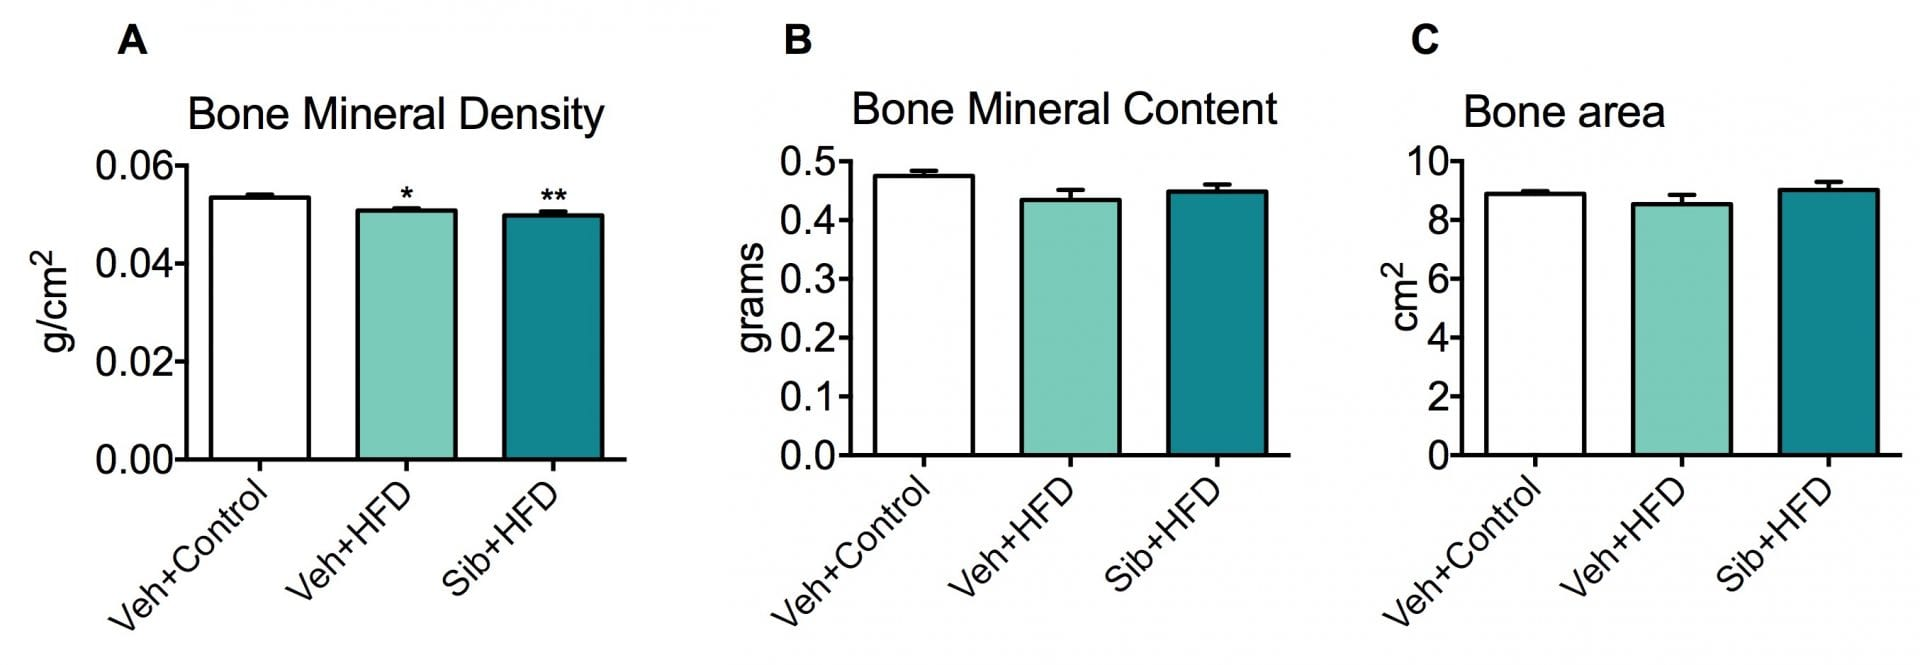 Bone Marrow Density Scan showed no significant changes in Bone Mineral Content (B) or Bone Area (C) between all groups